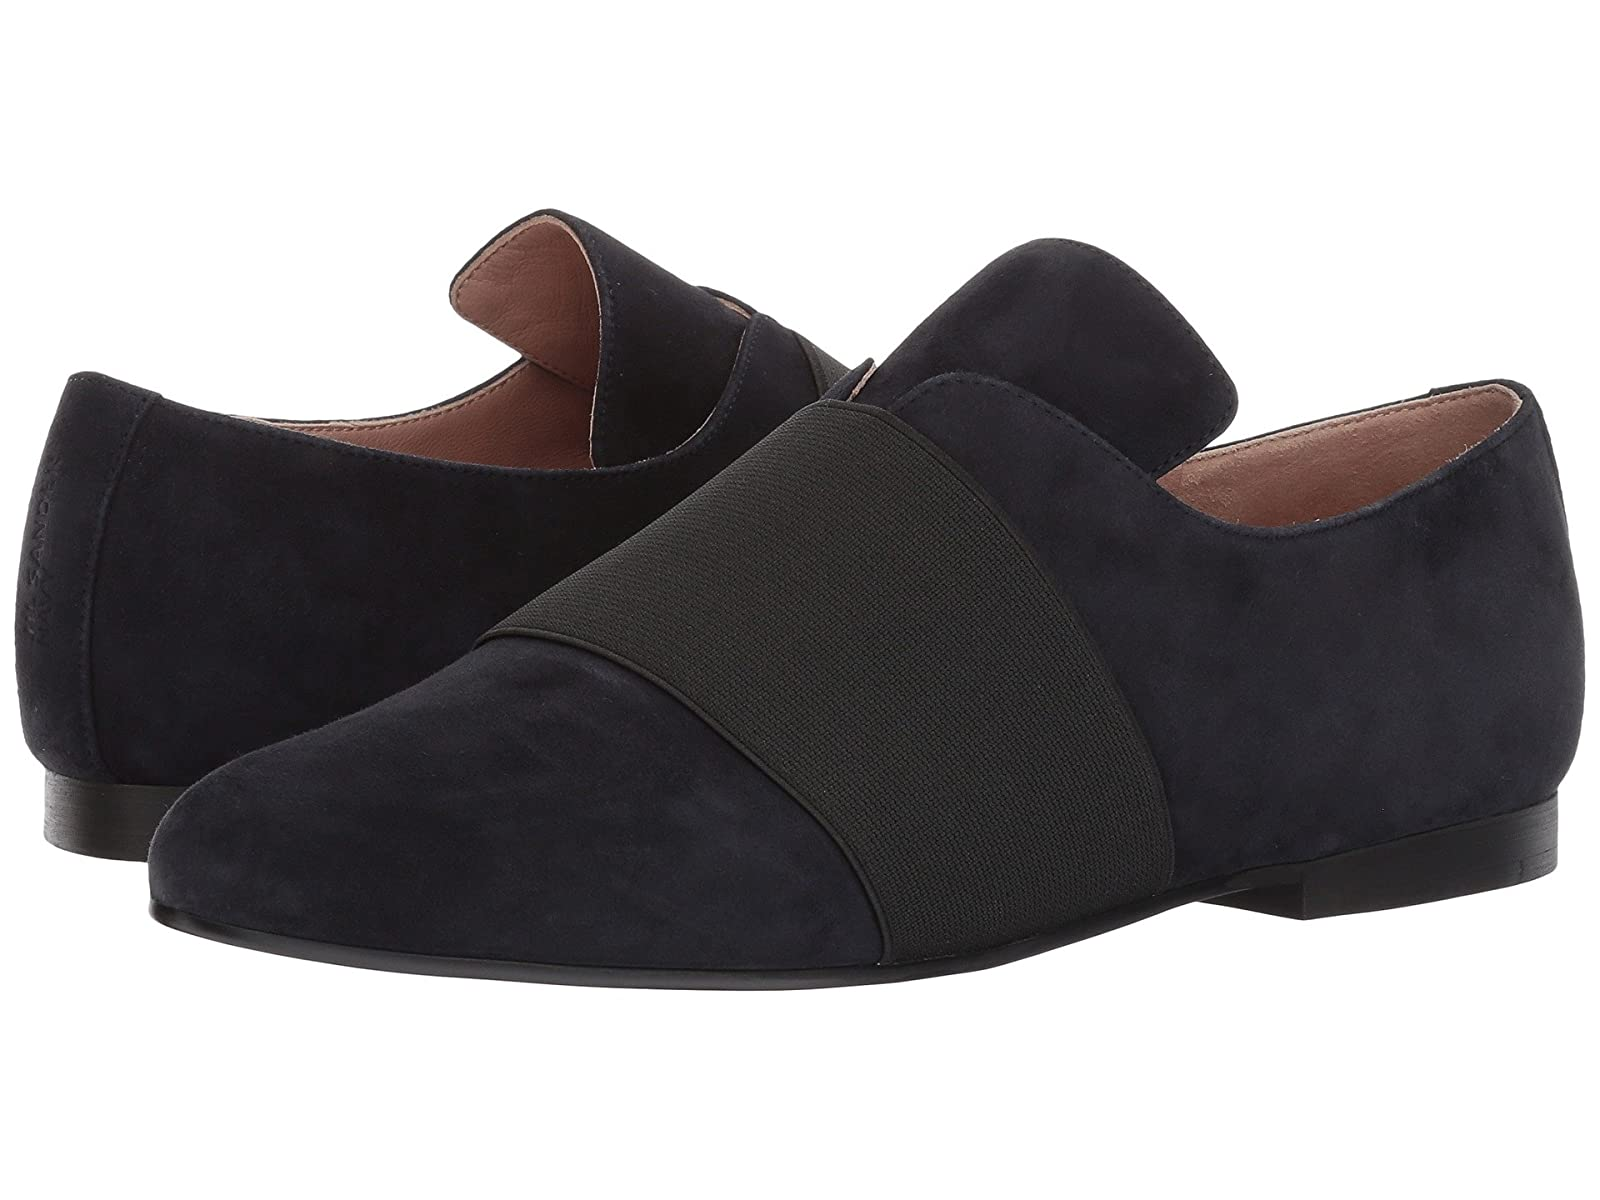 Jil Sander Navy JN29071Cheap and distinctive eye-catching shoes